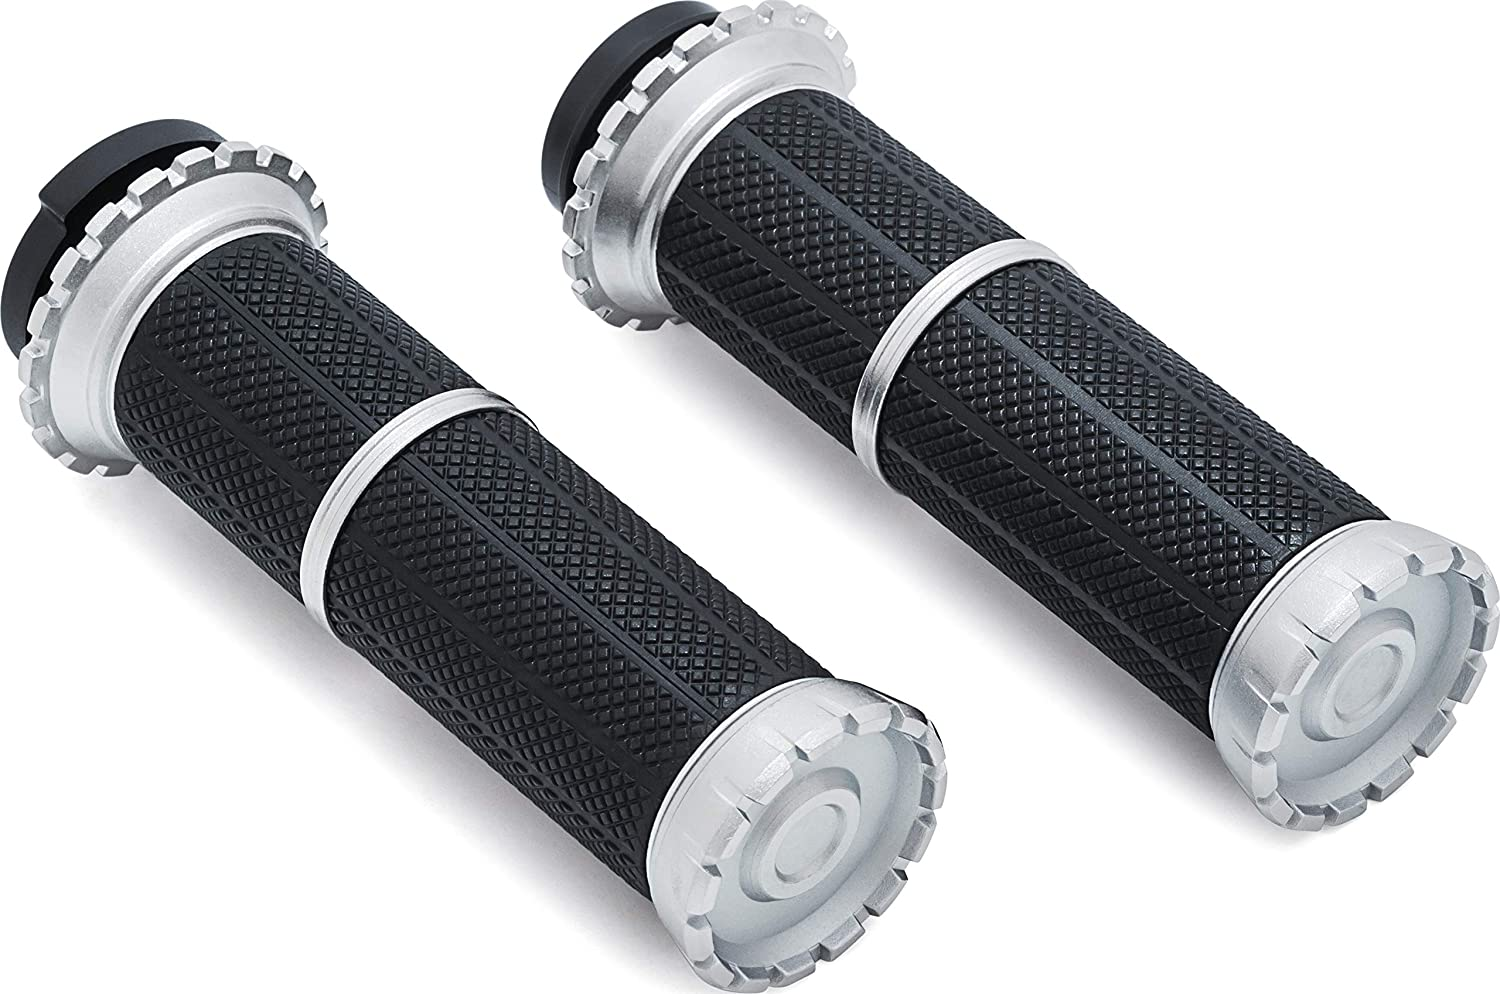 Silver Dual Cable Throttle Control: 1996-2019 Harley-Davidson Motorcycles 1 Pair Kuryakyn 3580 Riot Handlebar Grips for Throttle and Clutch